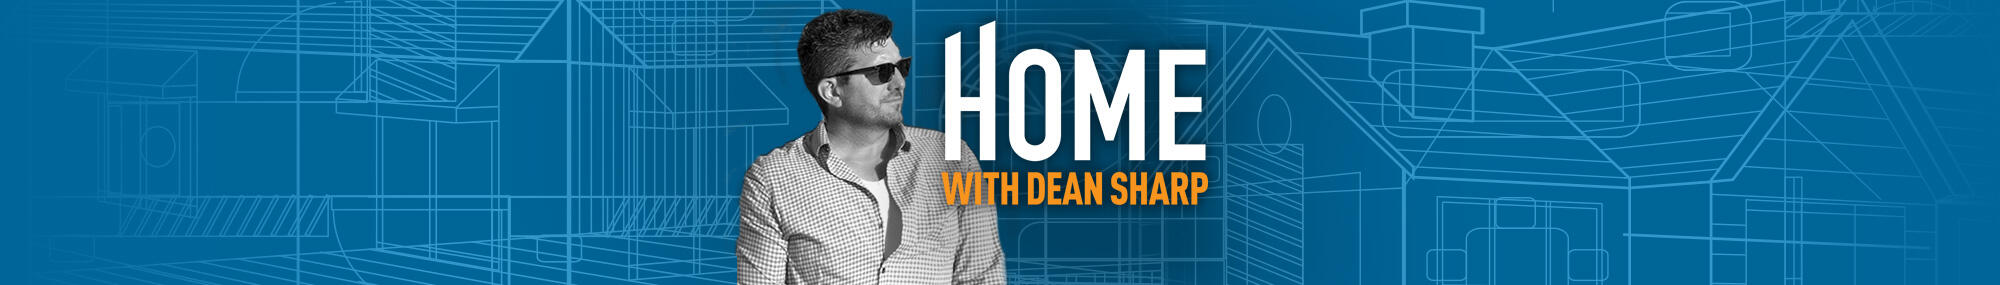 Dean Sharp Joins @GaryAndShannon To Discuss Routers